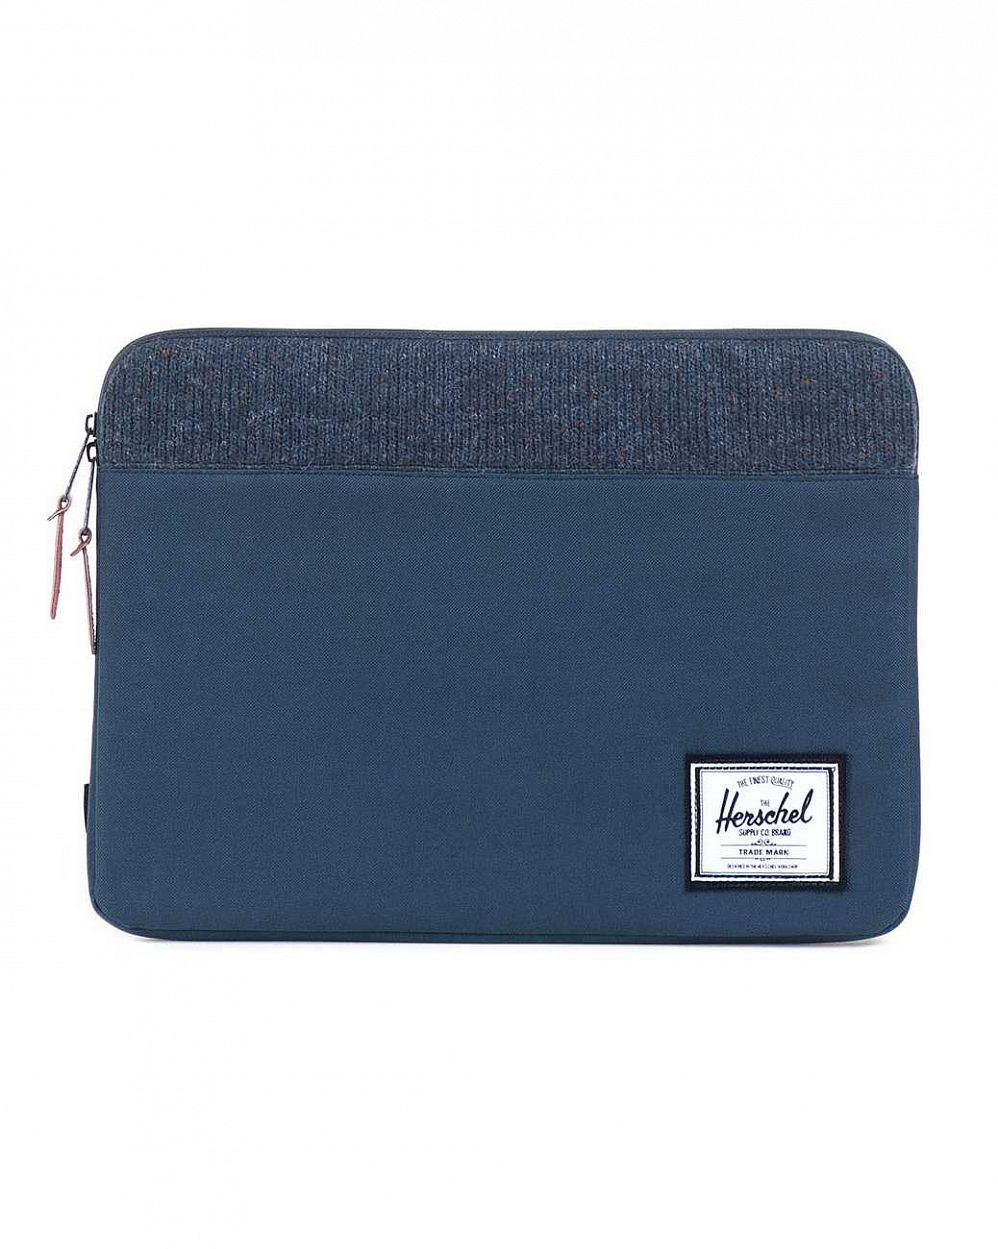 Чехол Herschel Anchor Sleeve для 15'' Macbook Navy отзывы